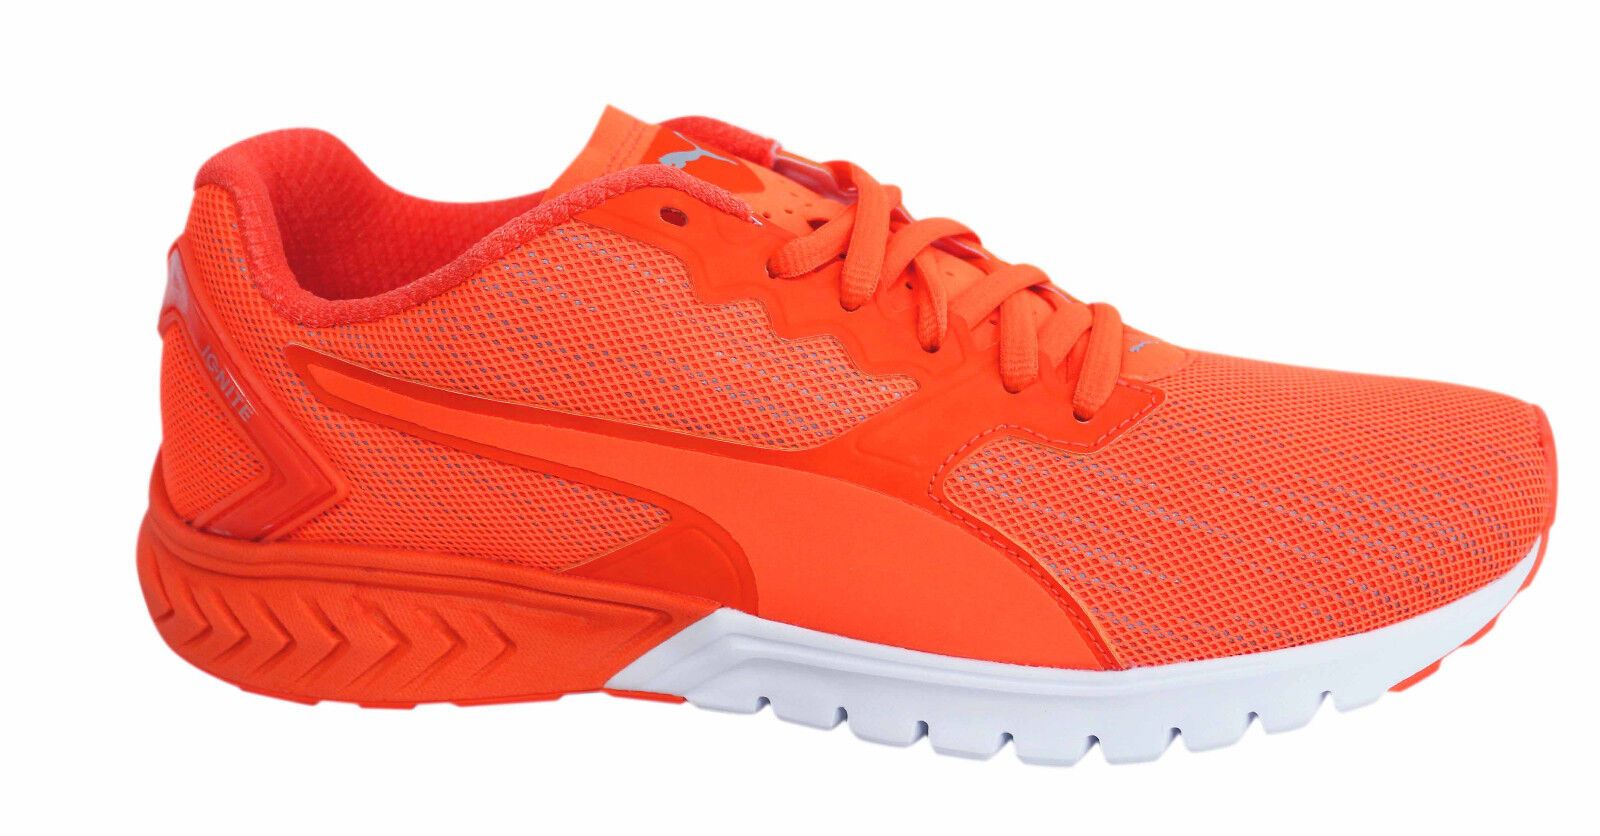 Details about Puma Ignite Dual Nightcat Orange Lace Up Mens Trainers 189354 02 B3A